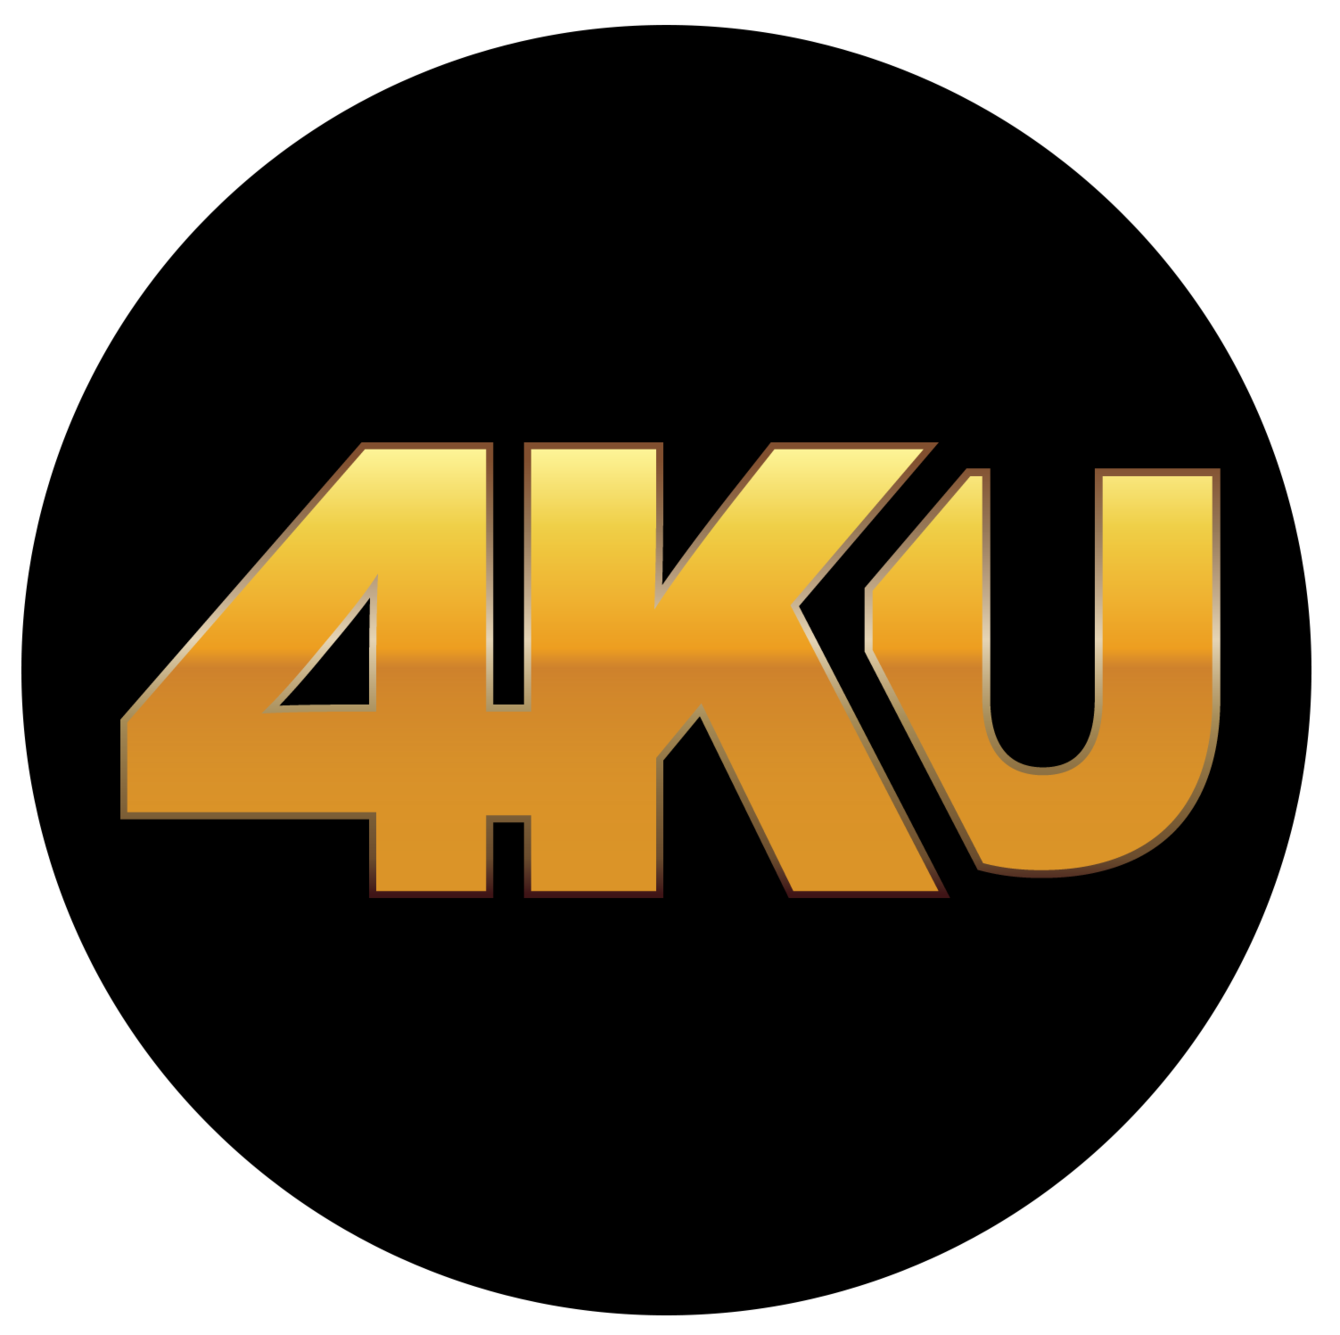 4KUniverse's New Year's Eve 2021 TV Special – 4KUNIVERSE